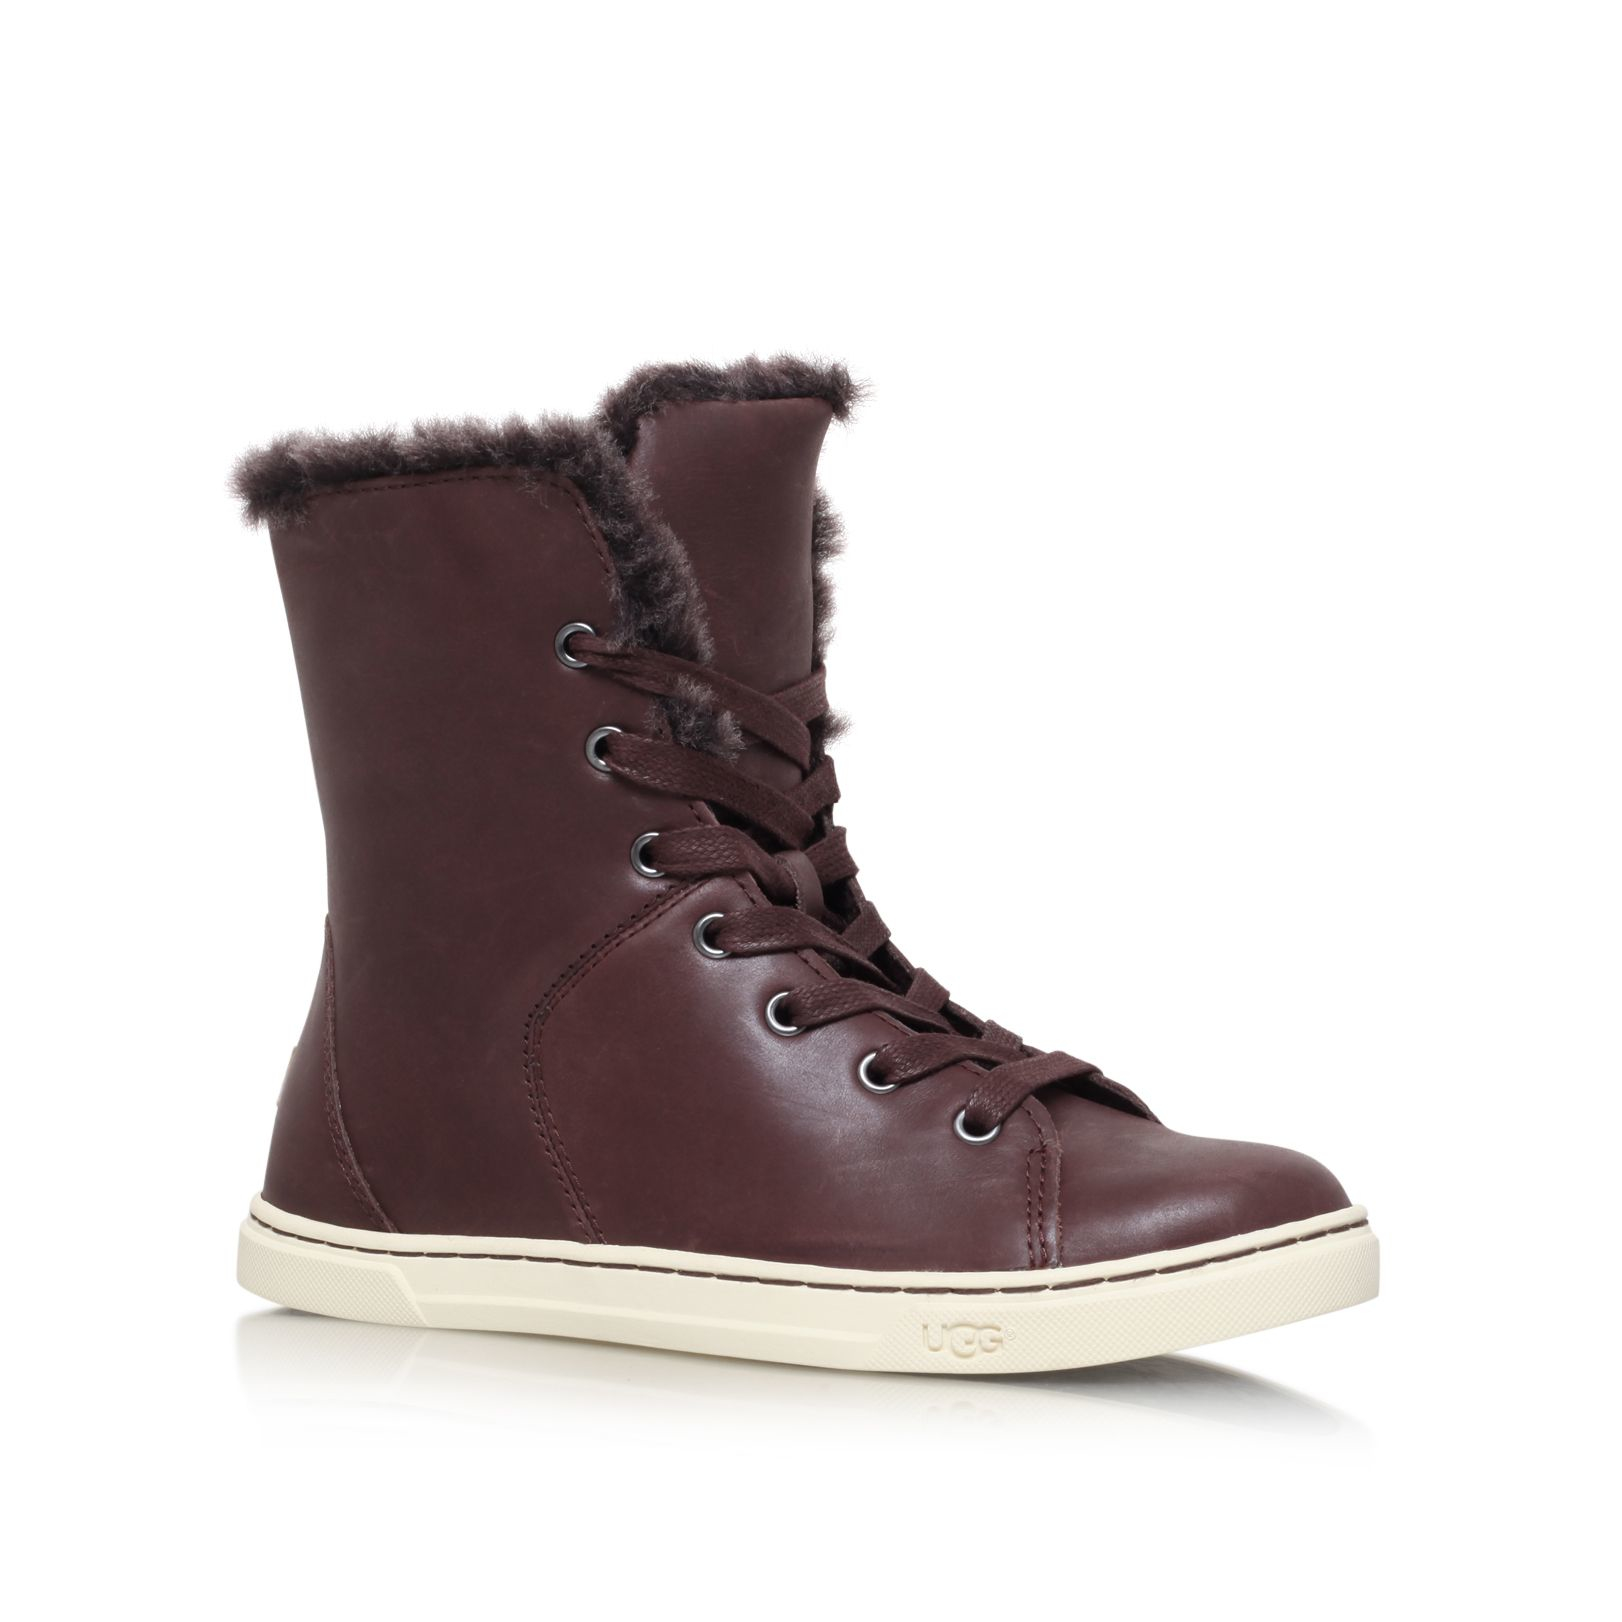 Ugg 174 Croft Luxe Quilt Burnished Leather Lace Up Sneakers